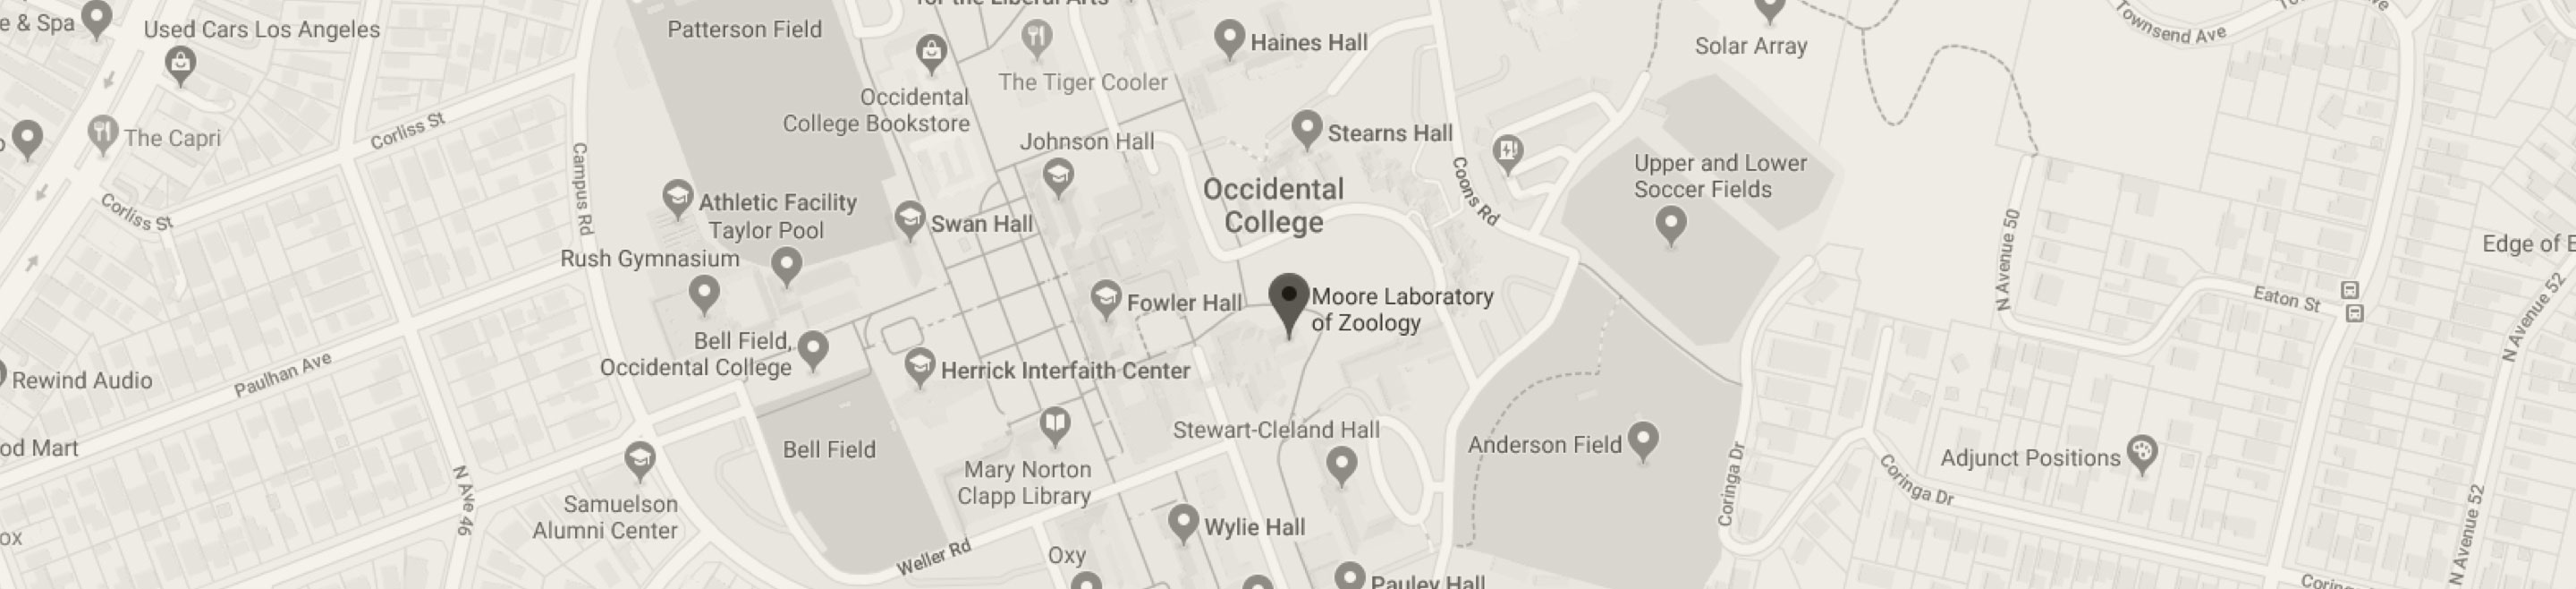 Google Map Screenshot of Moore Lab Location